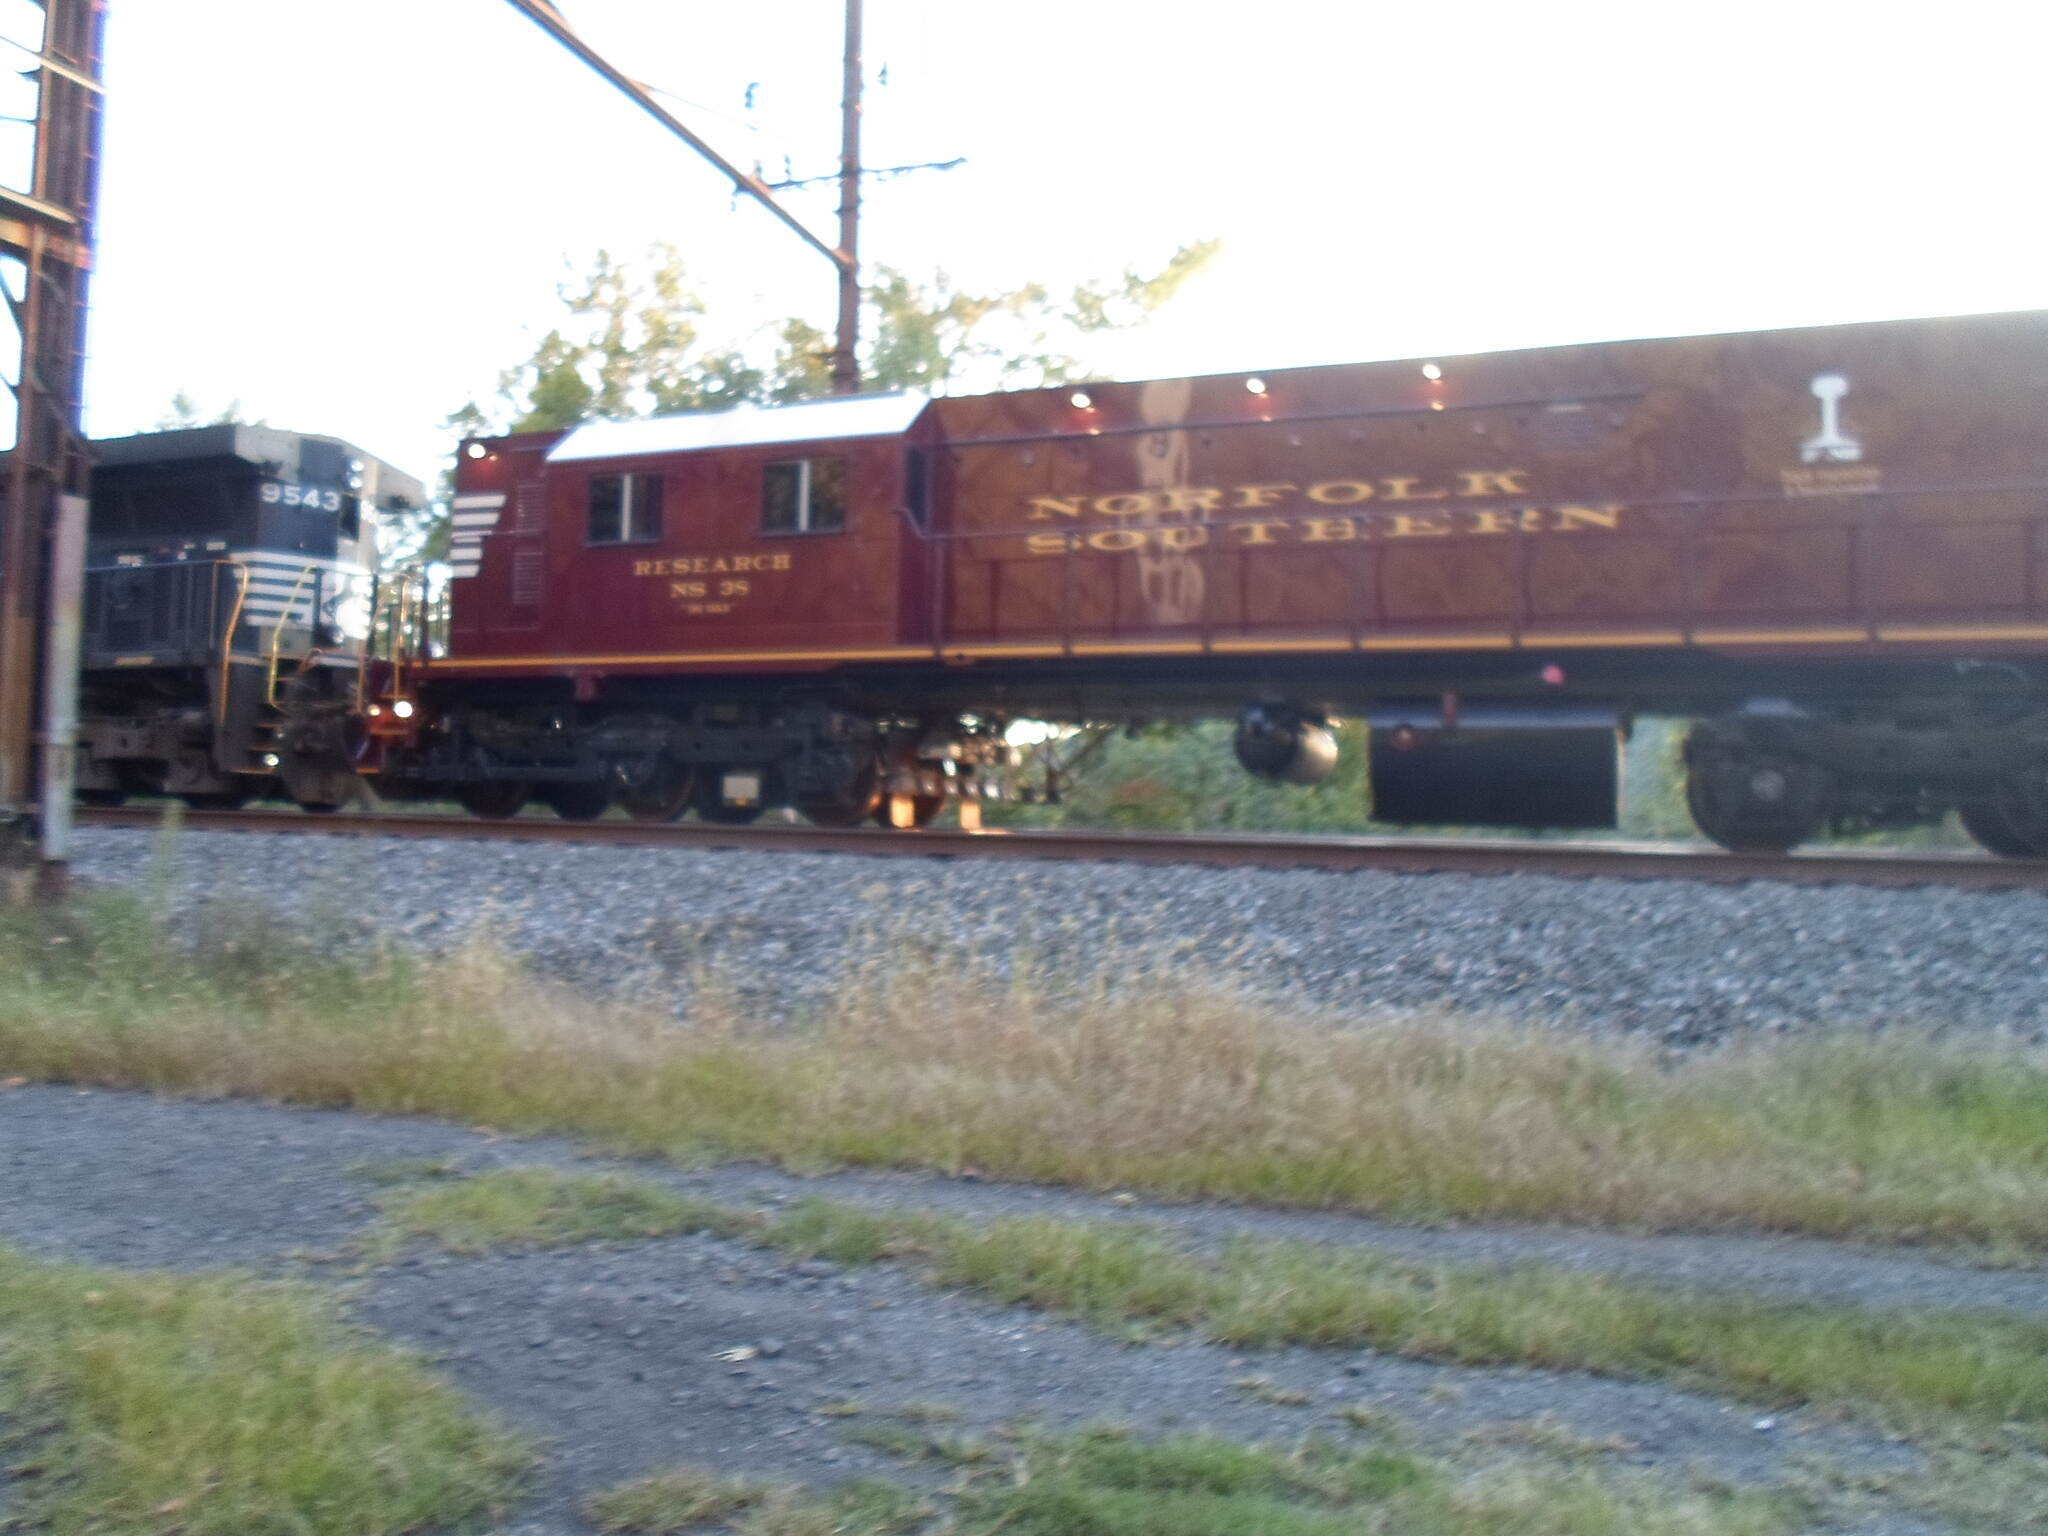 Northwest Lancaster County River Trail Northwest River Trail This Norfolk Southern train, with retro-historical designs to its lettering, passed by the trail at the foot of Chickies Rock. Taken Sept. 2014.